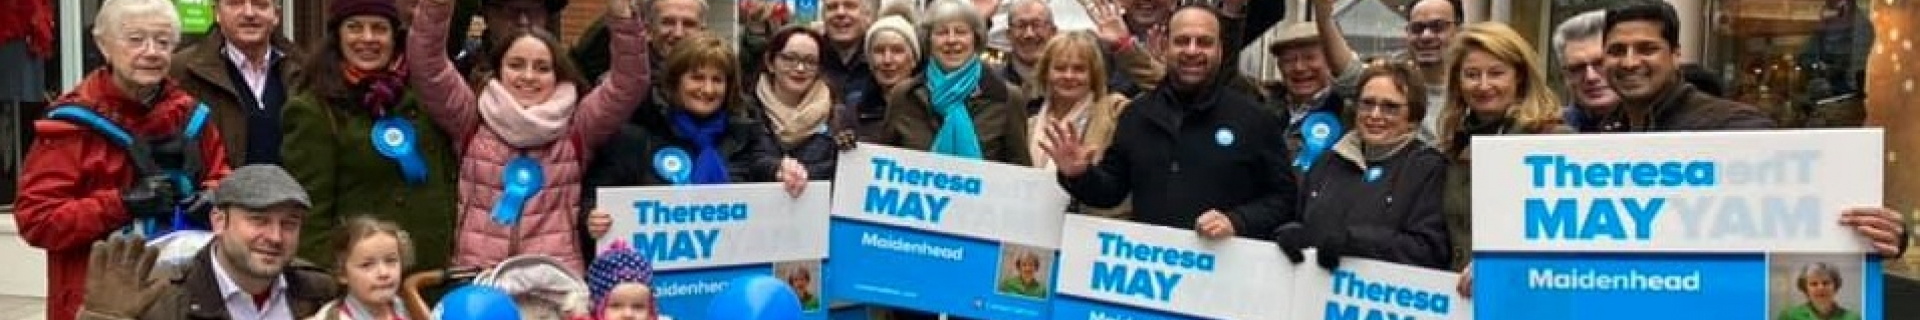 Banner image for Maidenhead